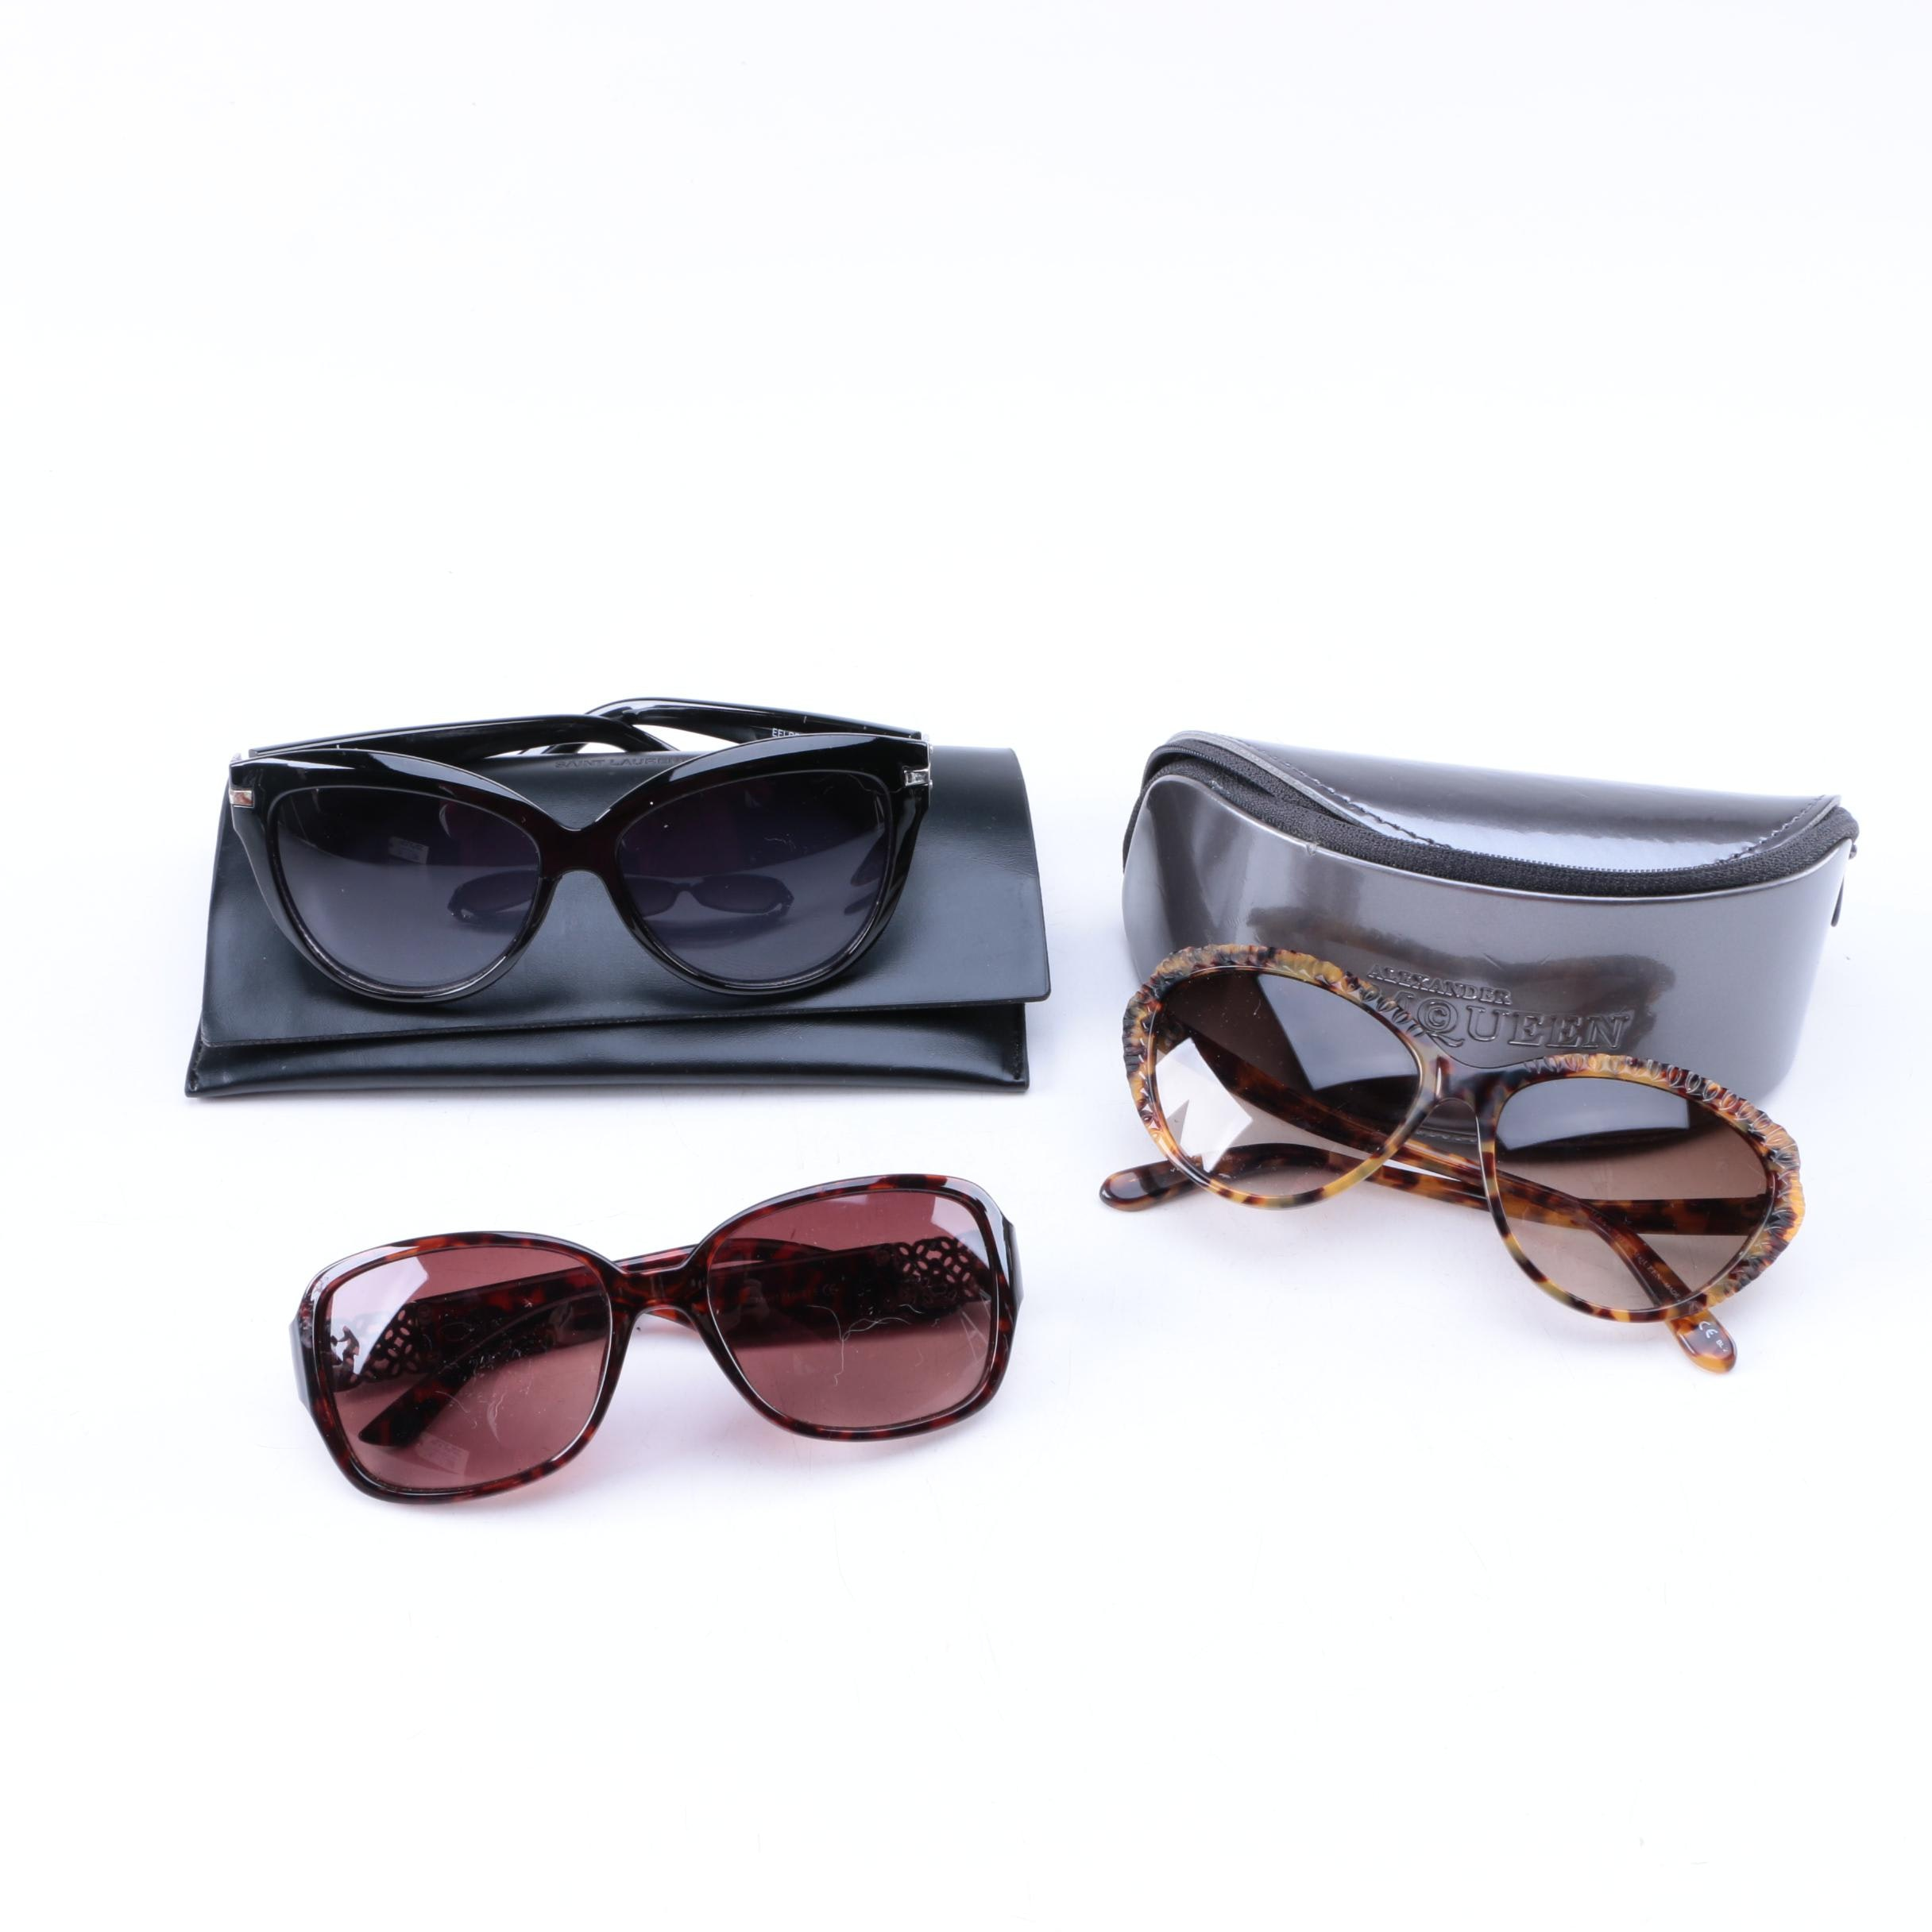 Women's Sunglasses Including O by Oscar de la Renta